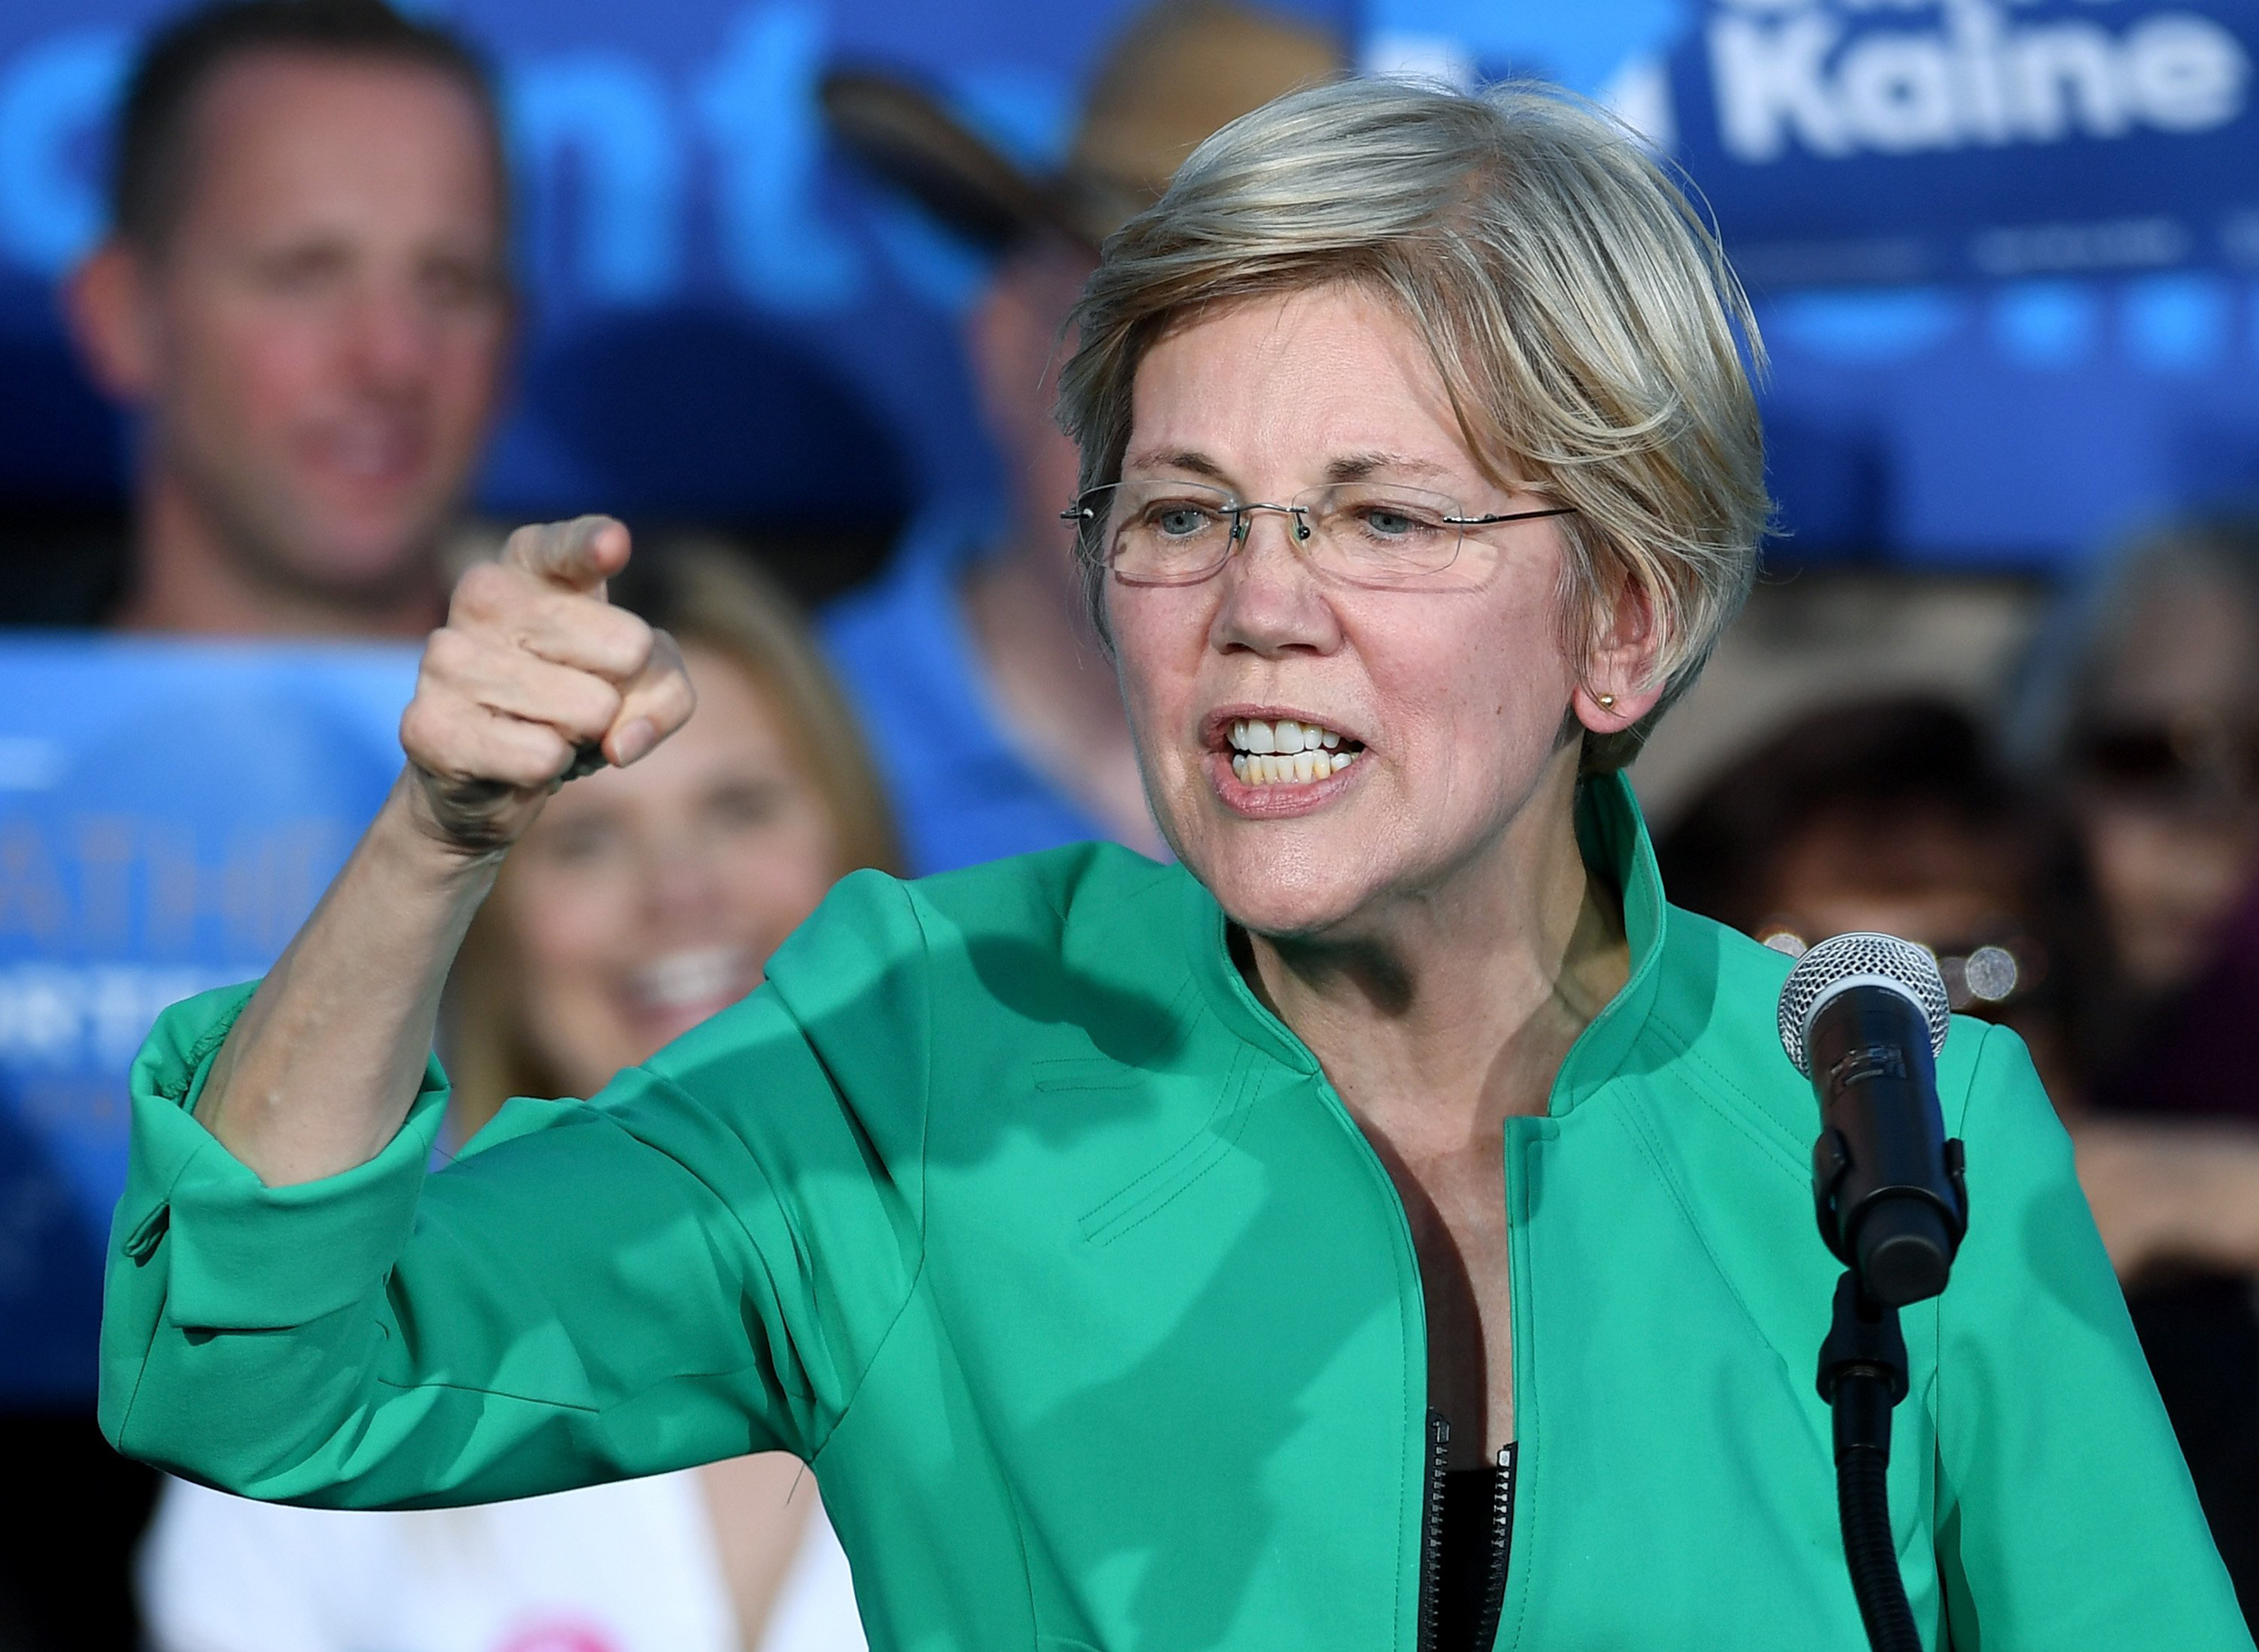 These Top Democrats Could Challenge Trump in 2020